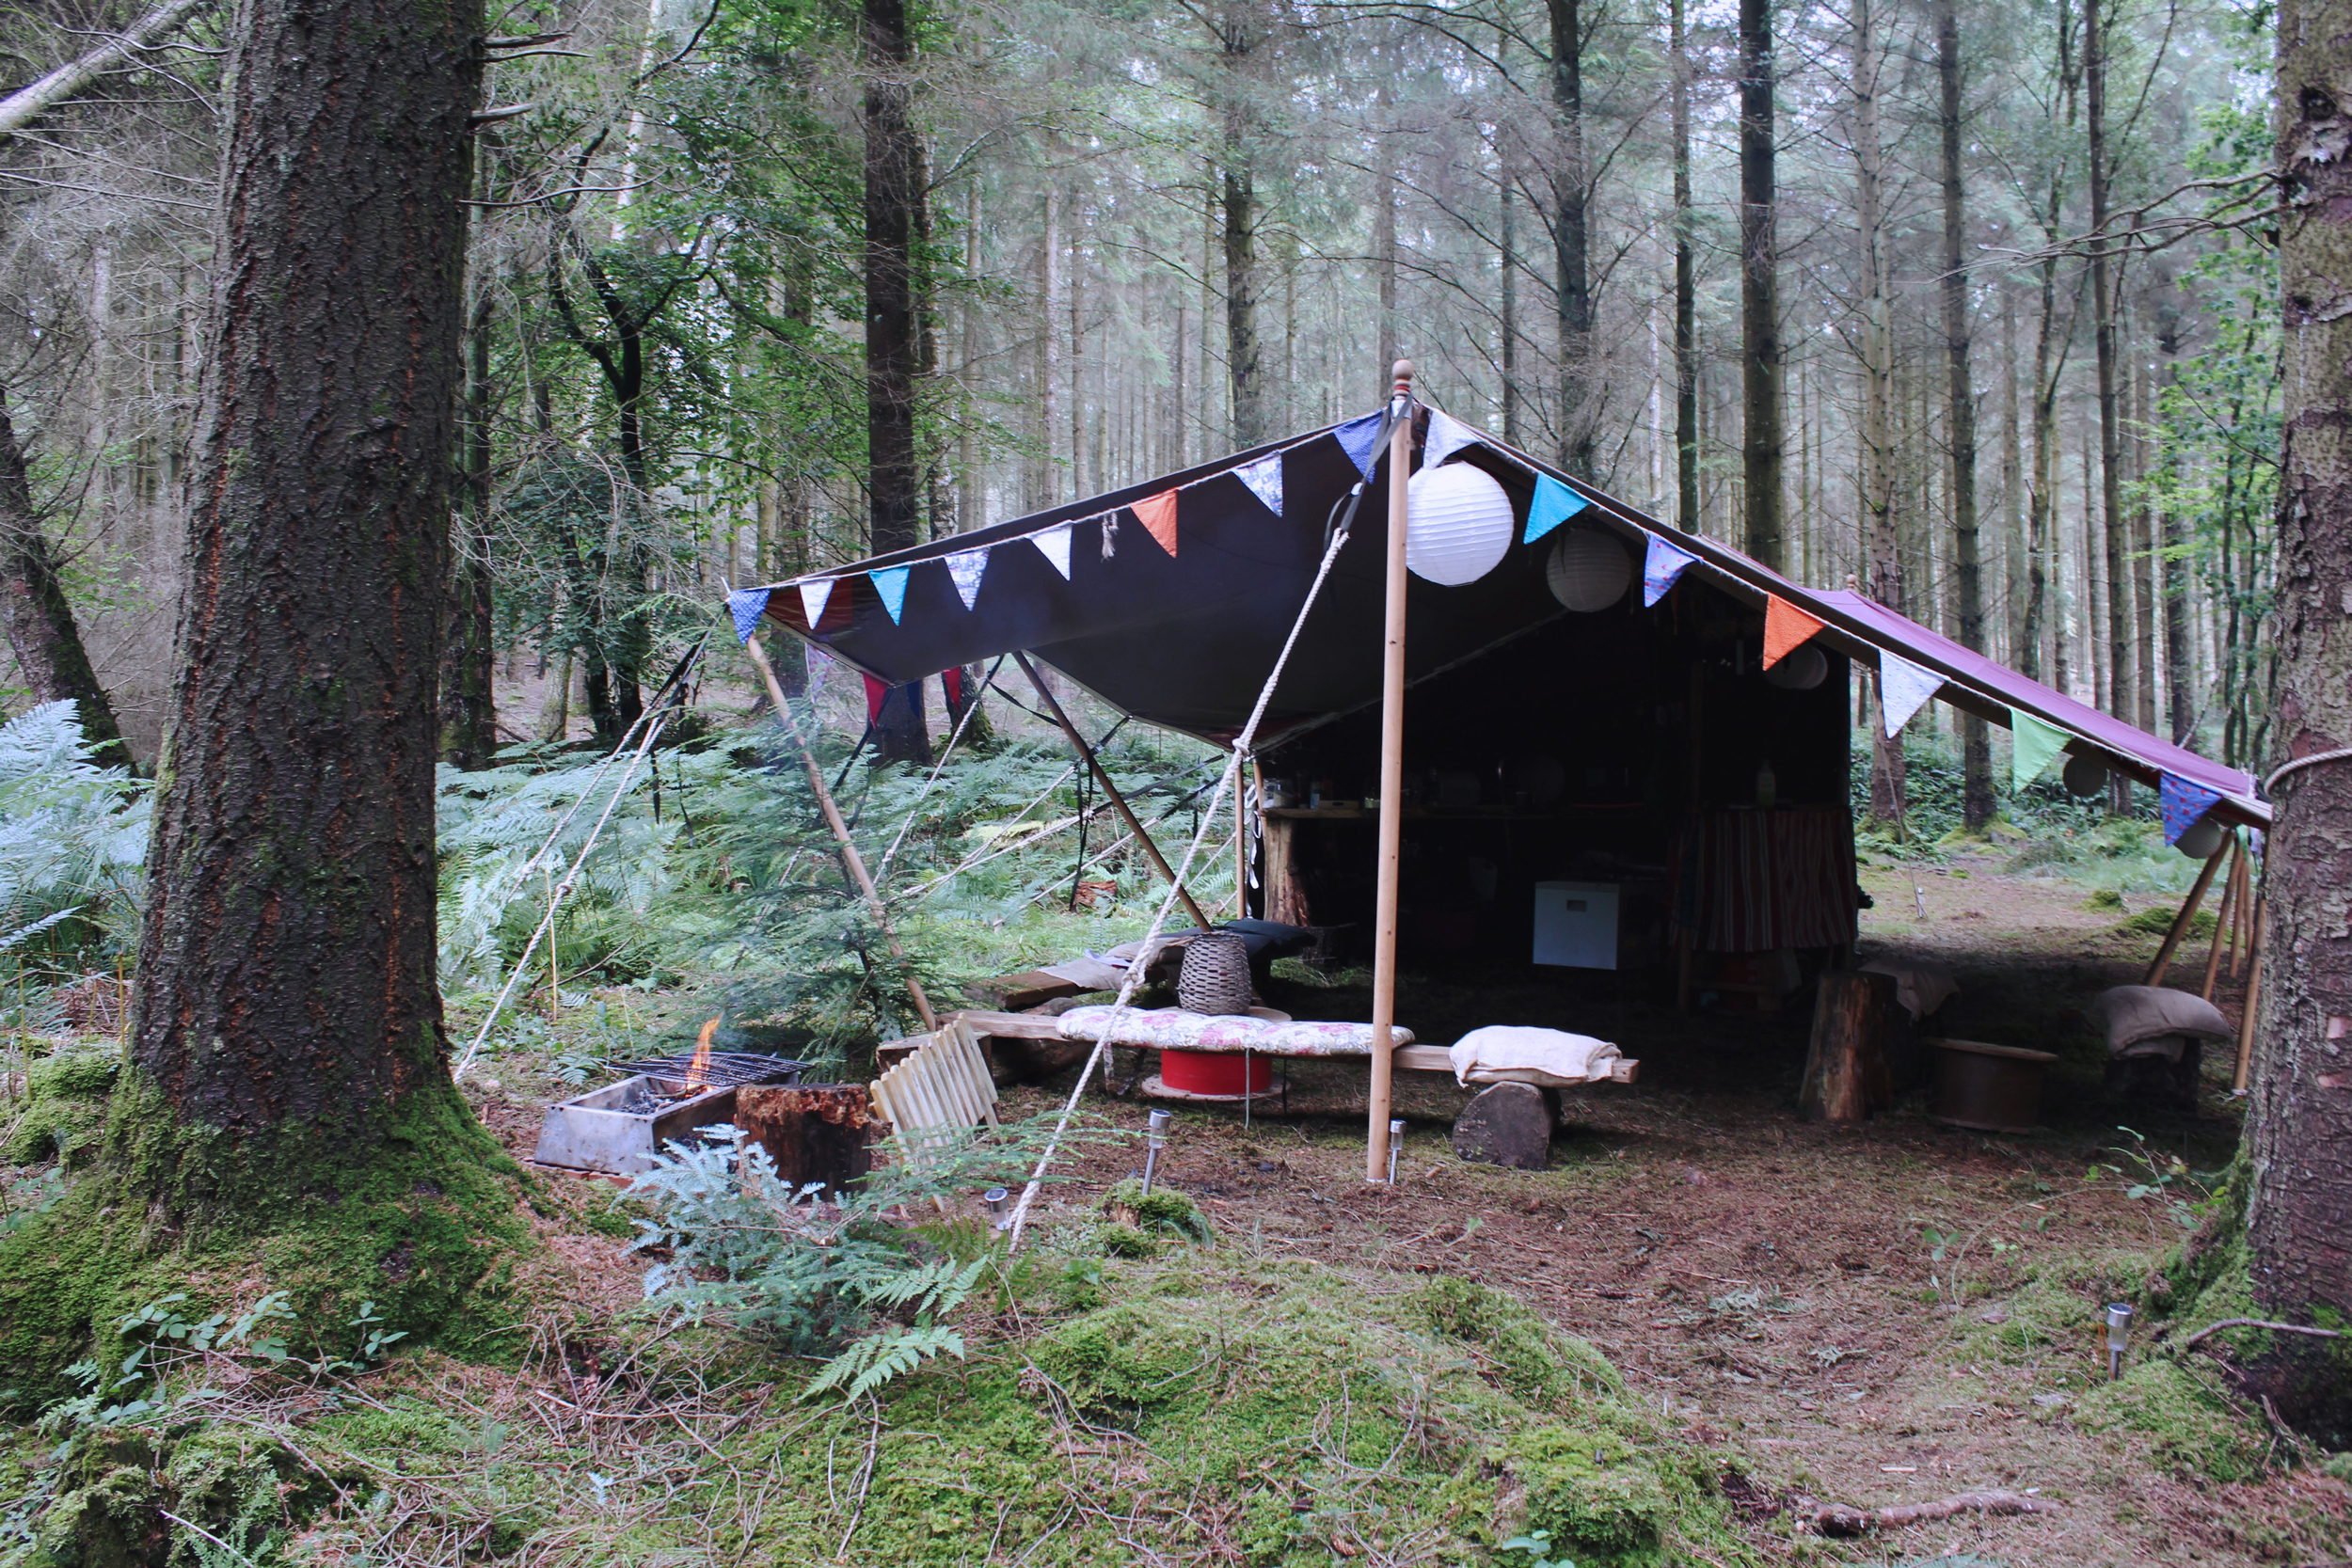 Cute woodland camping set up with bunting